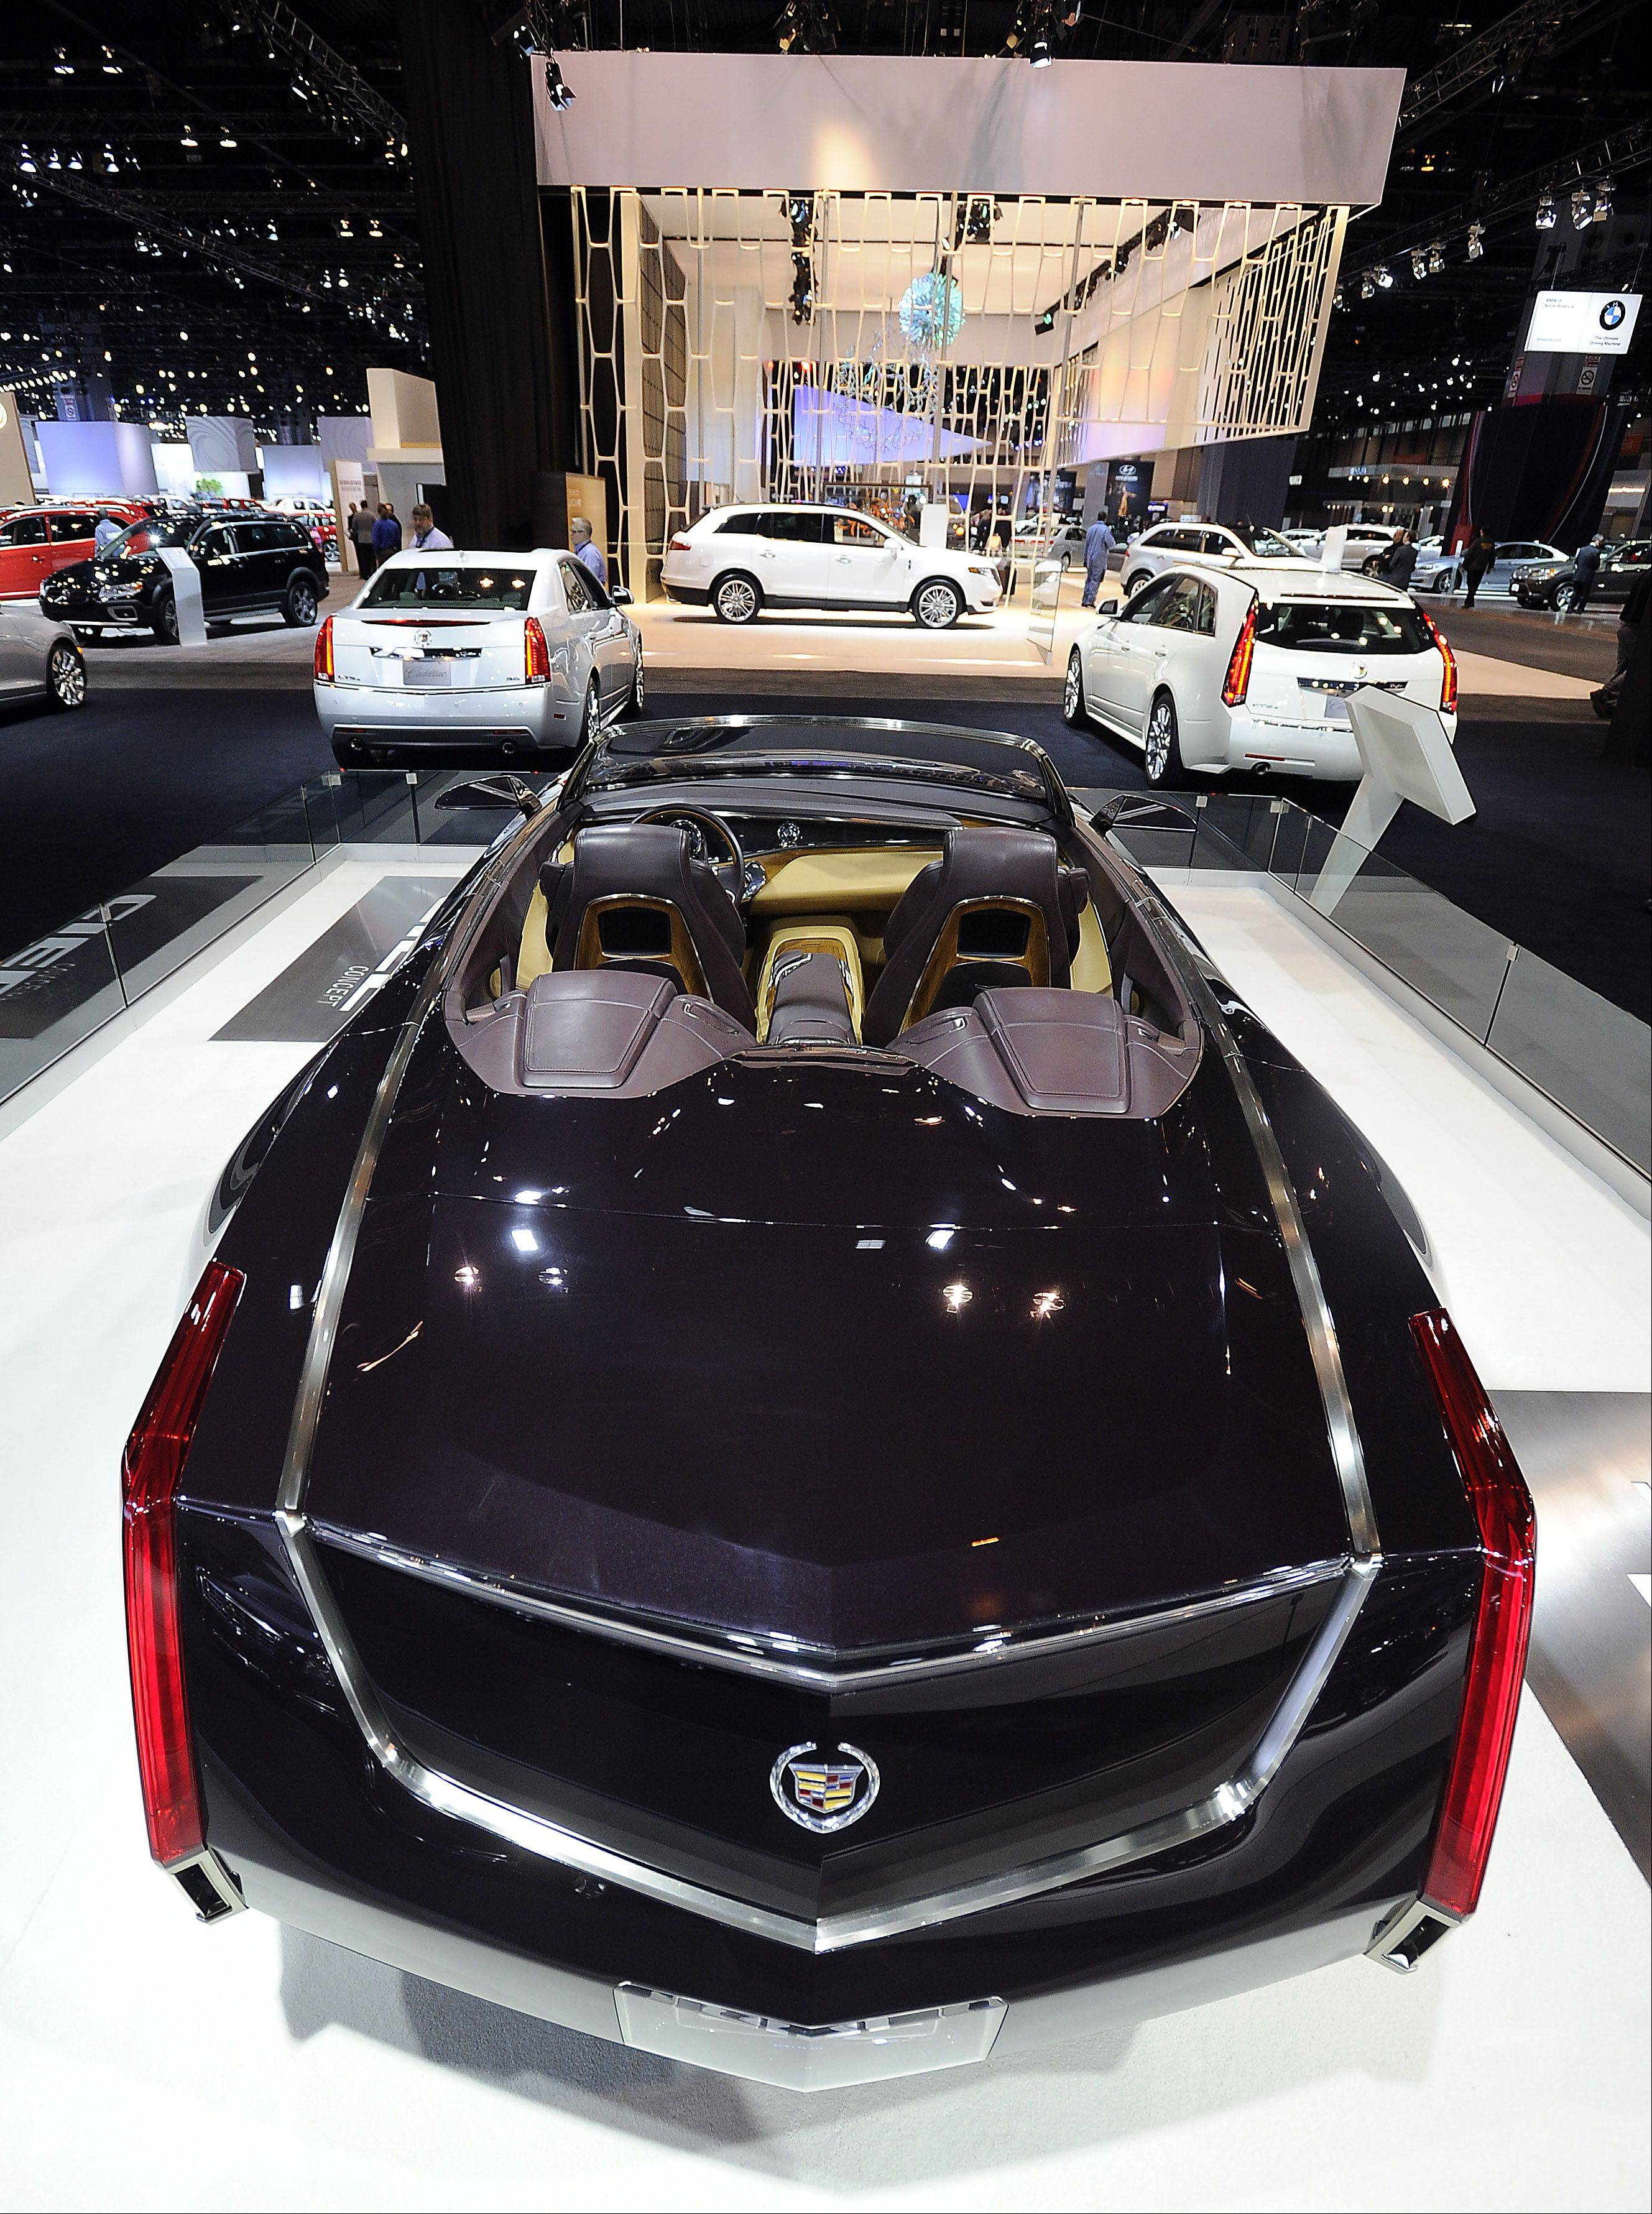 The Cadillac Ciel Concept car is on display.